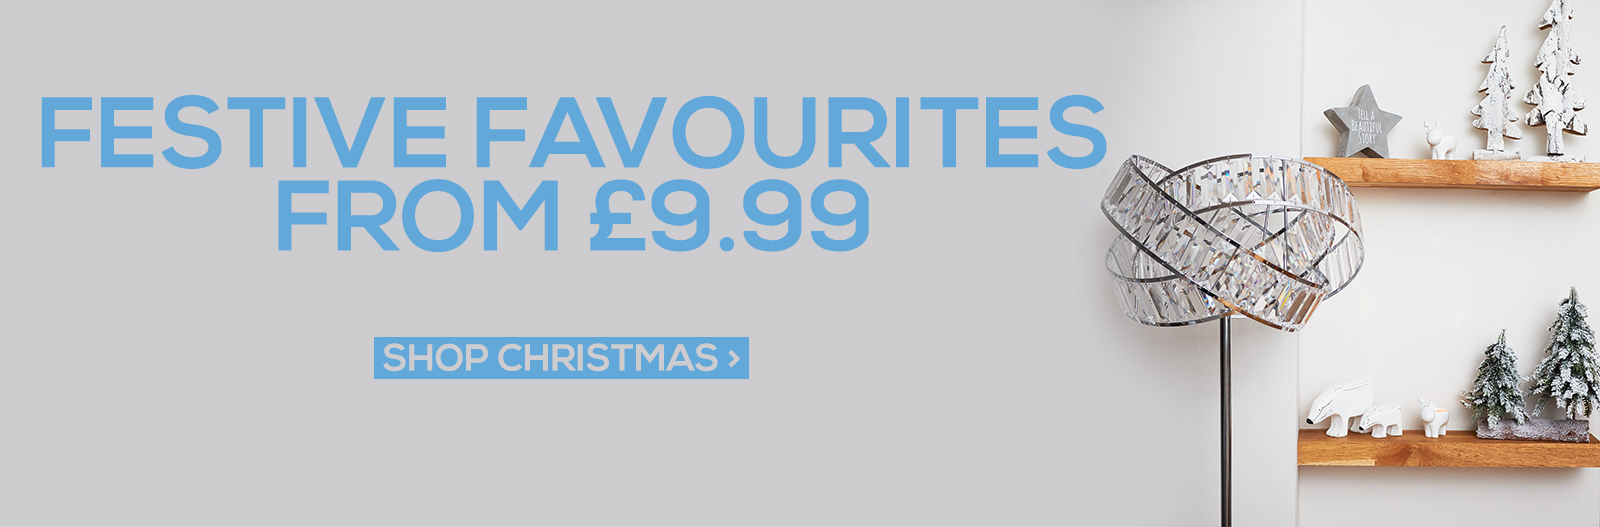 Festive Favourites From £9.99